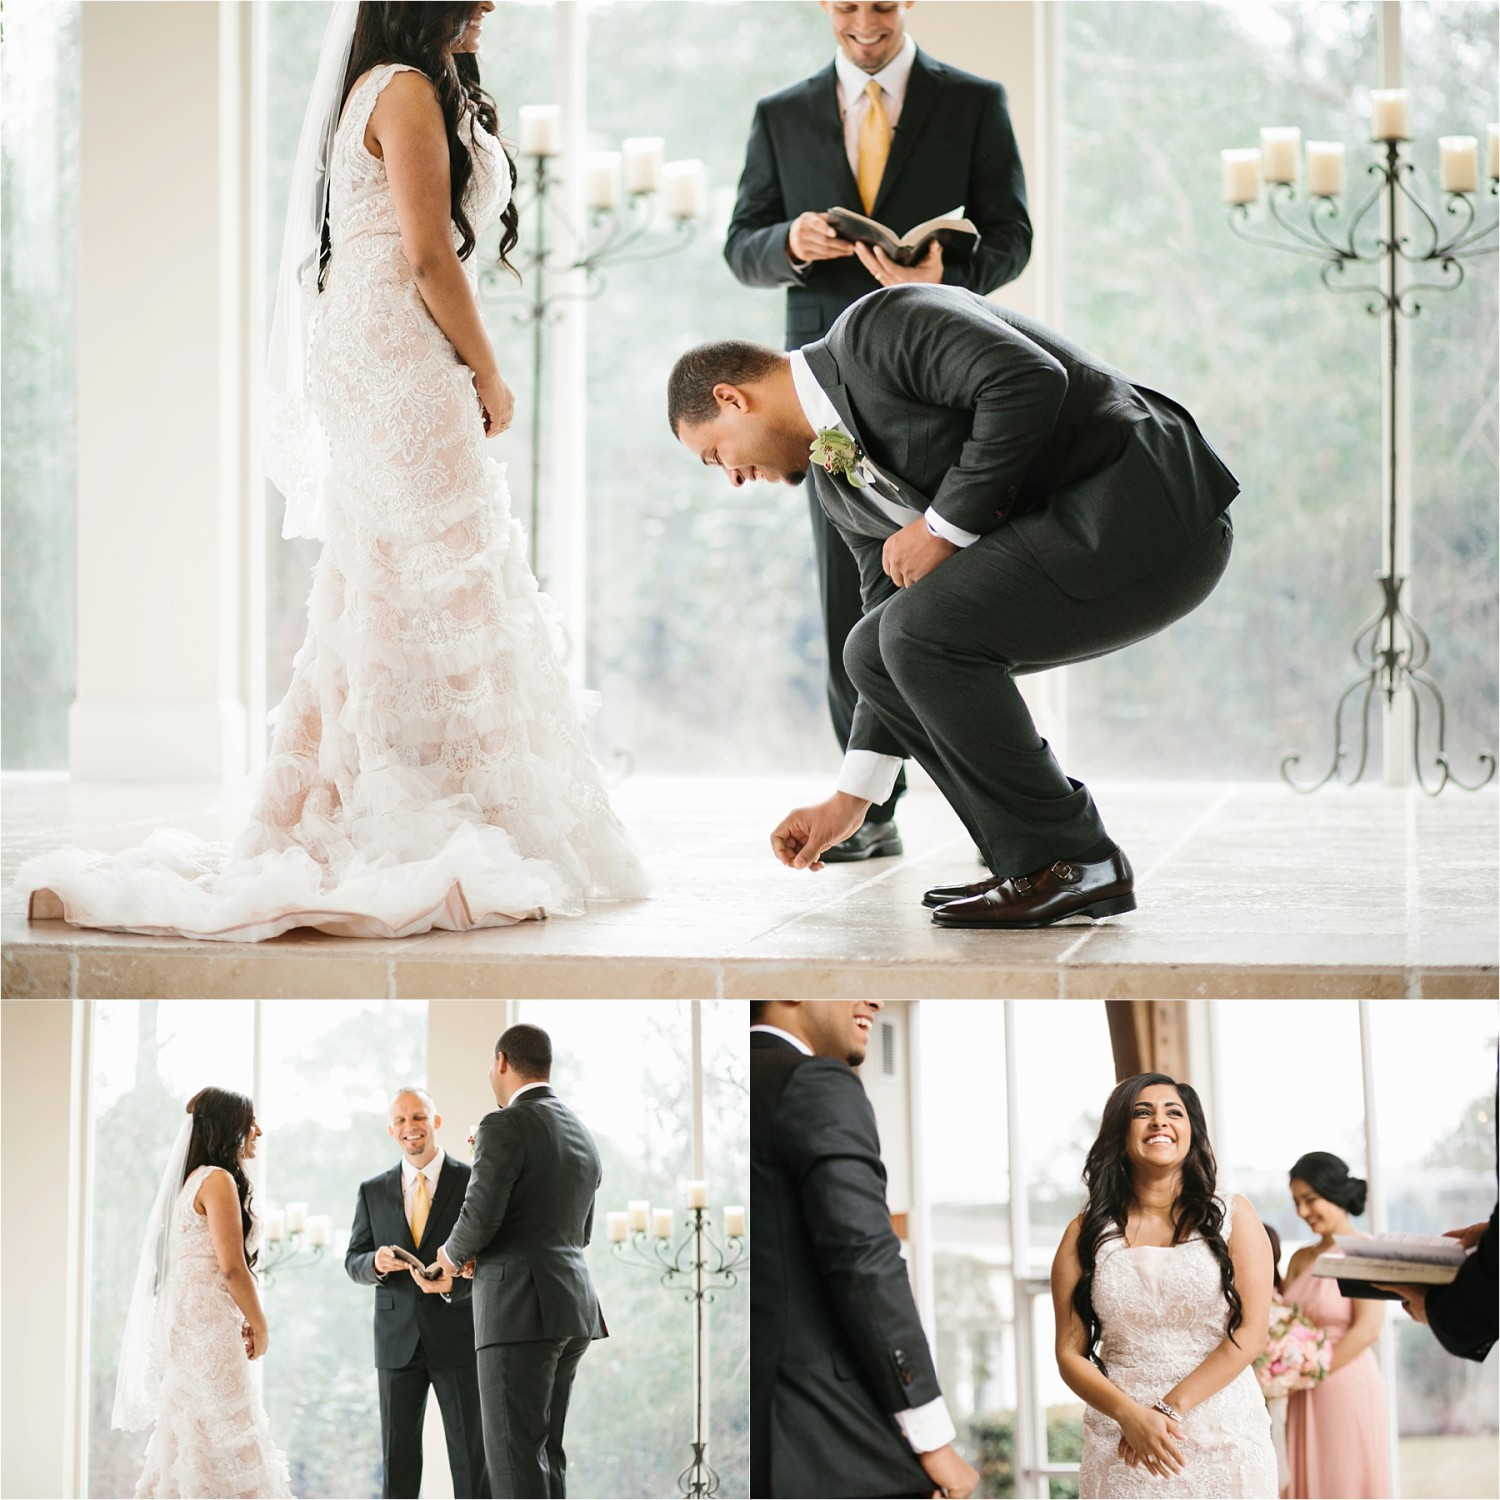 Jeanpaul + Ann __ a colorful wedding at Ashton Gardens in Houston TX by North Texas Wedding Photographer Rachel Meagan Photography _ 28